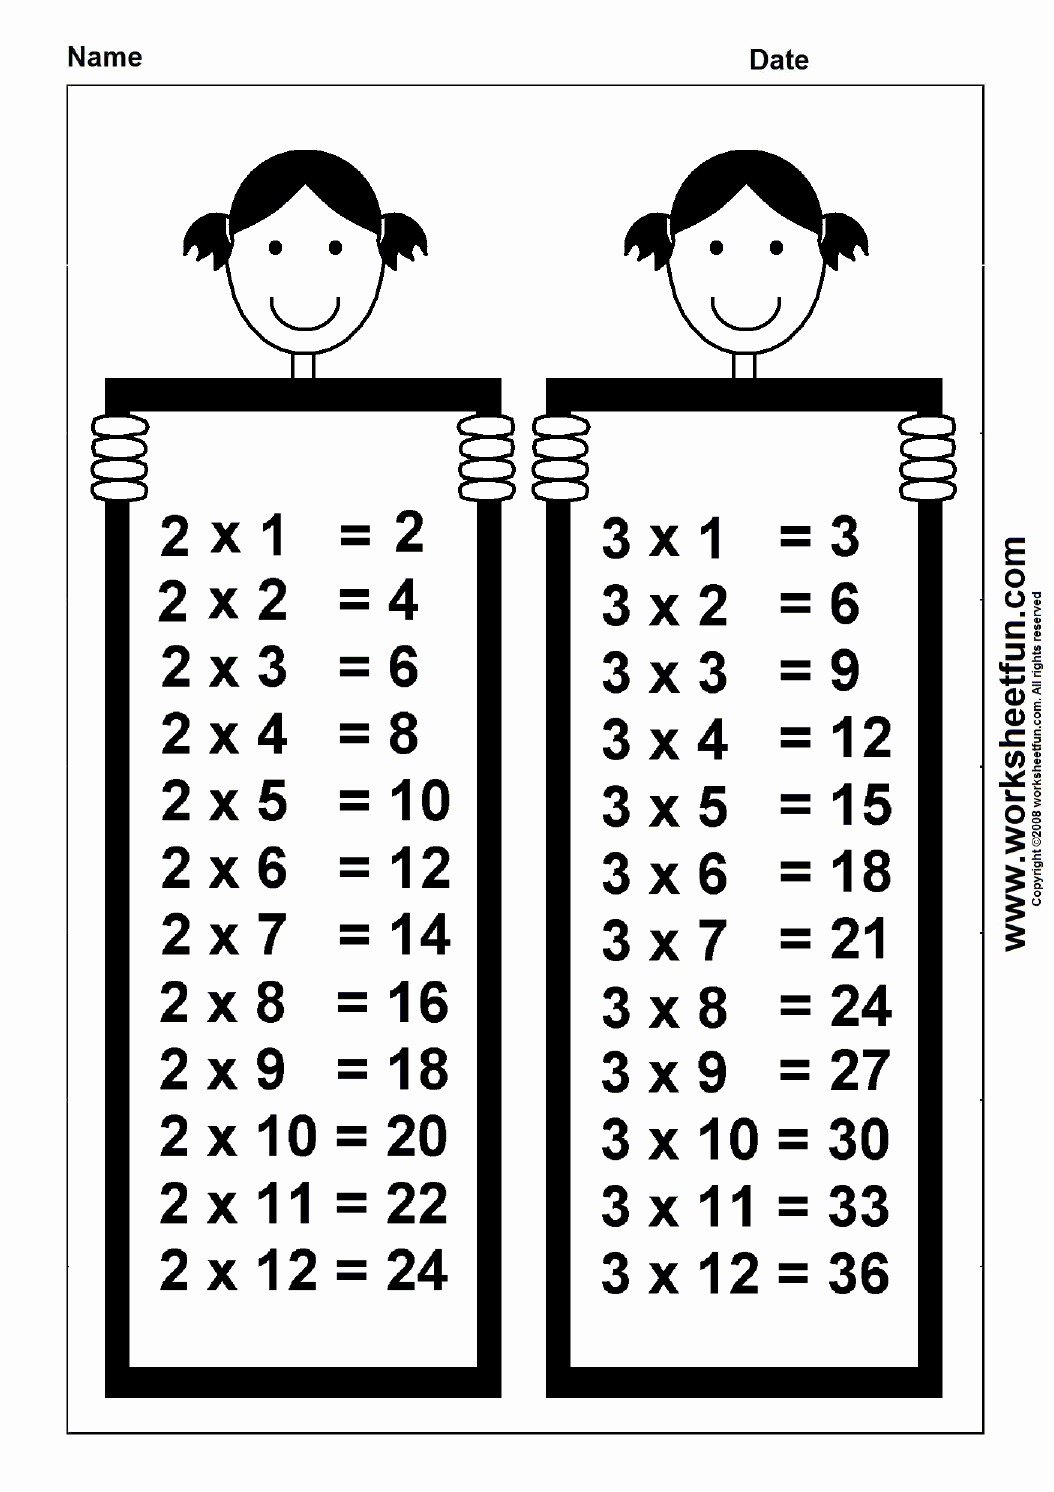 3 Times Table Worksheet Elegant Times Table Chart – 2 & 3 Free Printable Worksheets